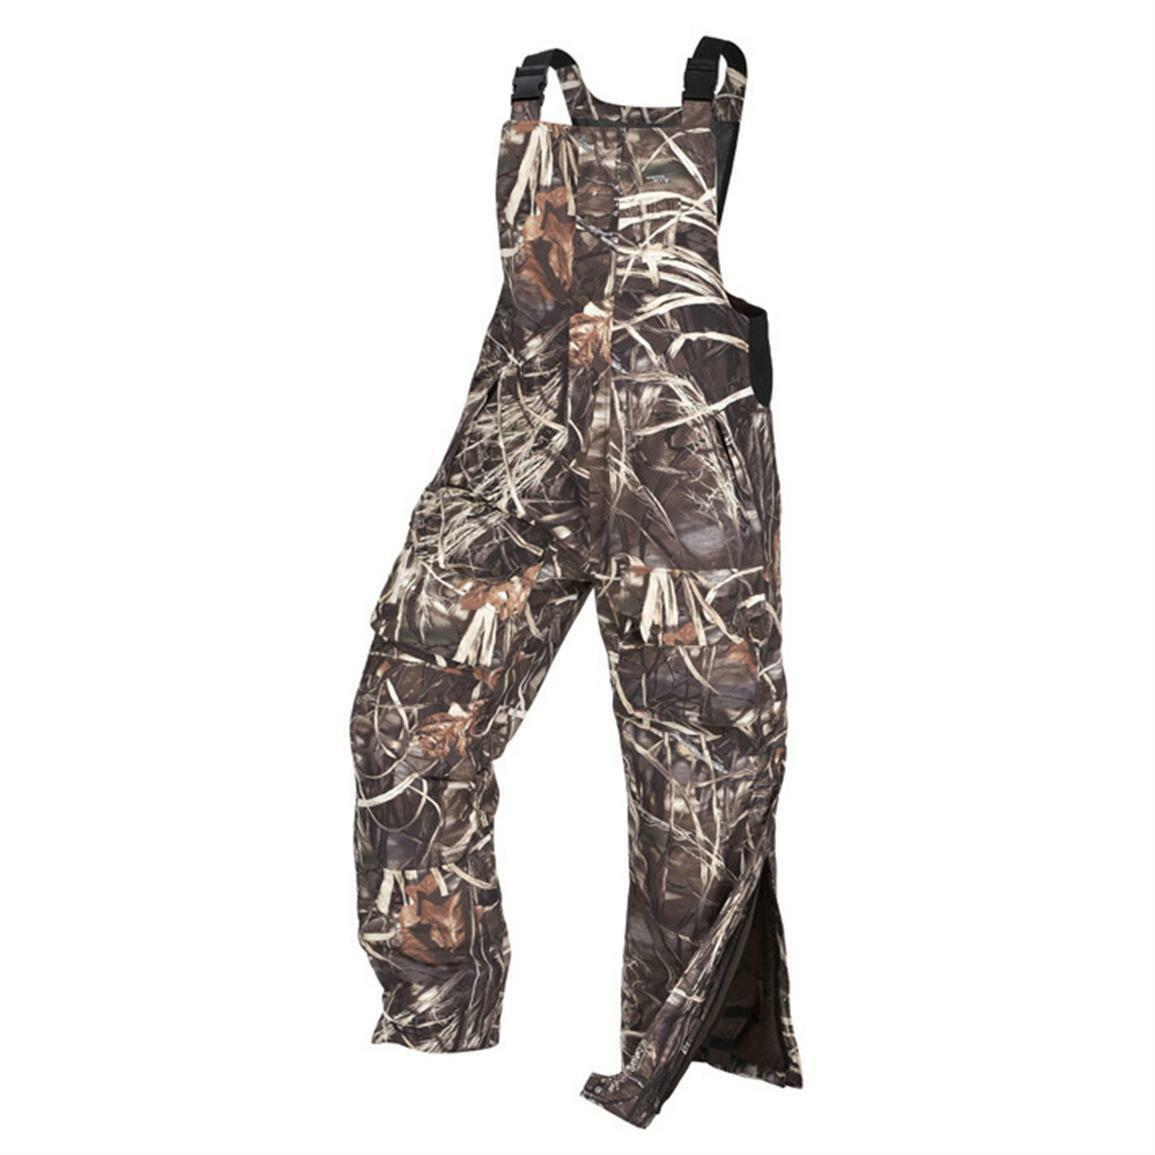 Cabela's Mens Waterfowl Extreme Realtree Max-4 Insulated Waterproof  Hunting Bibs  affordable